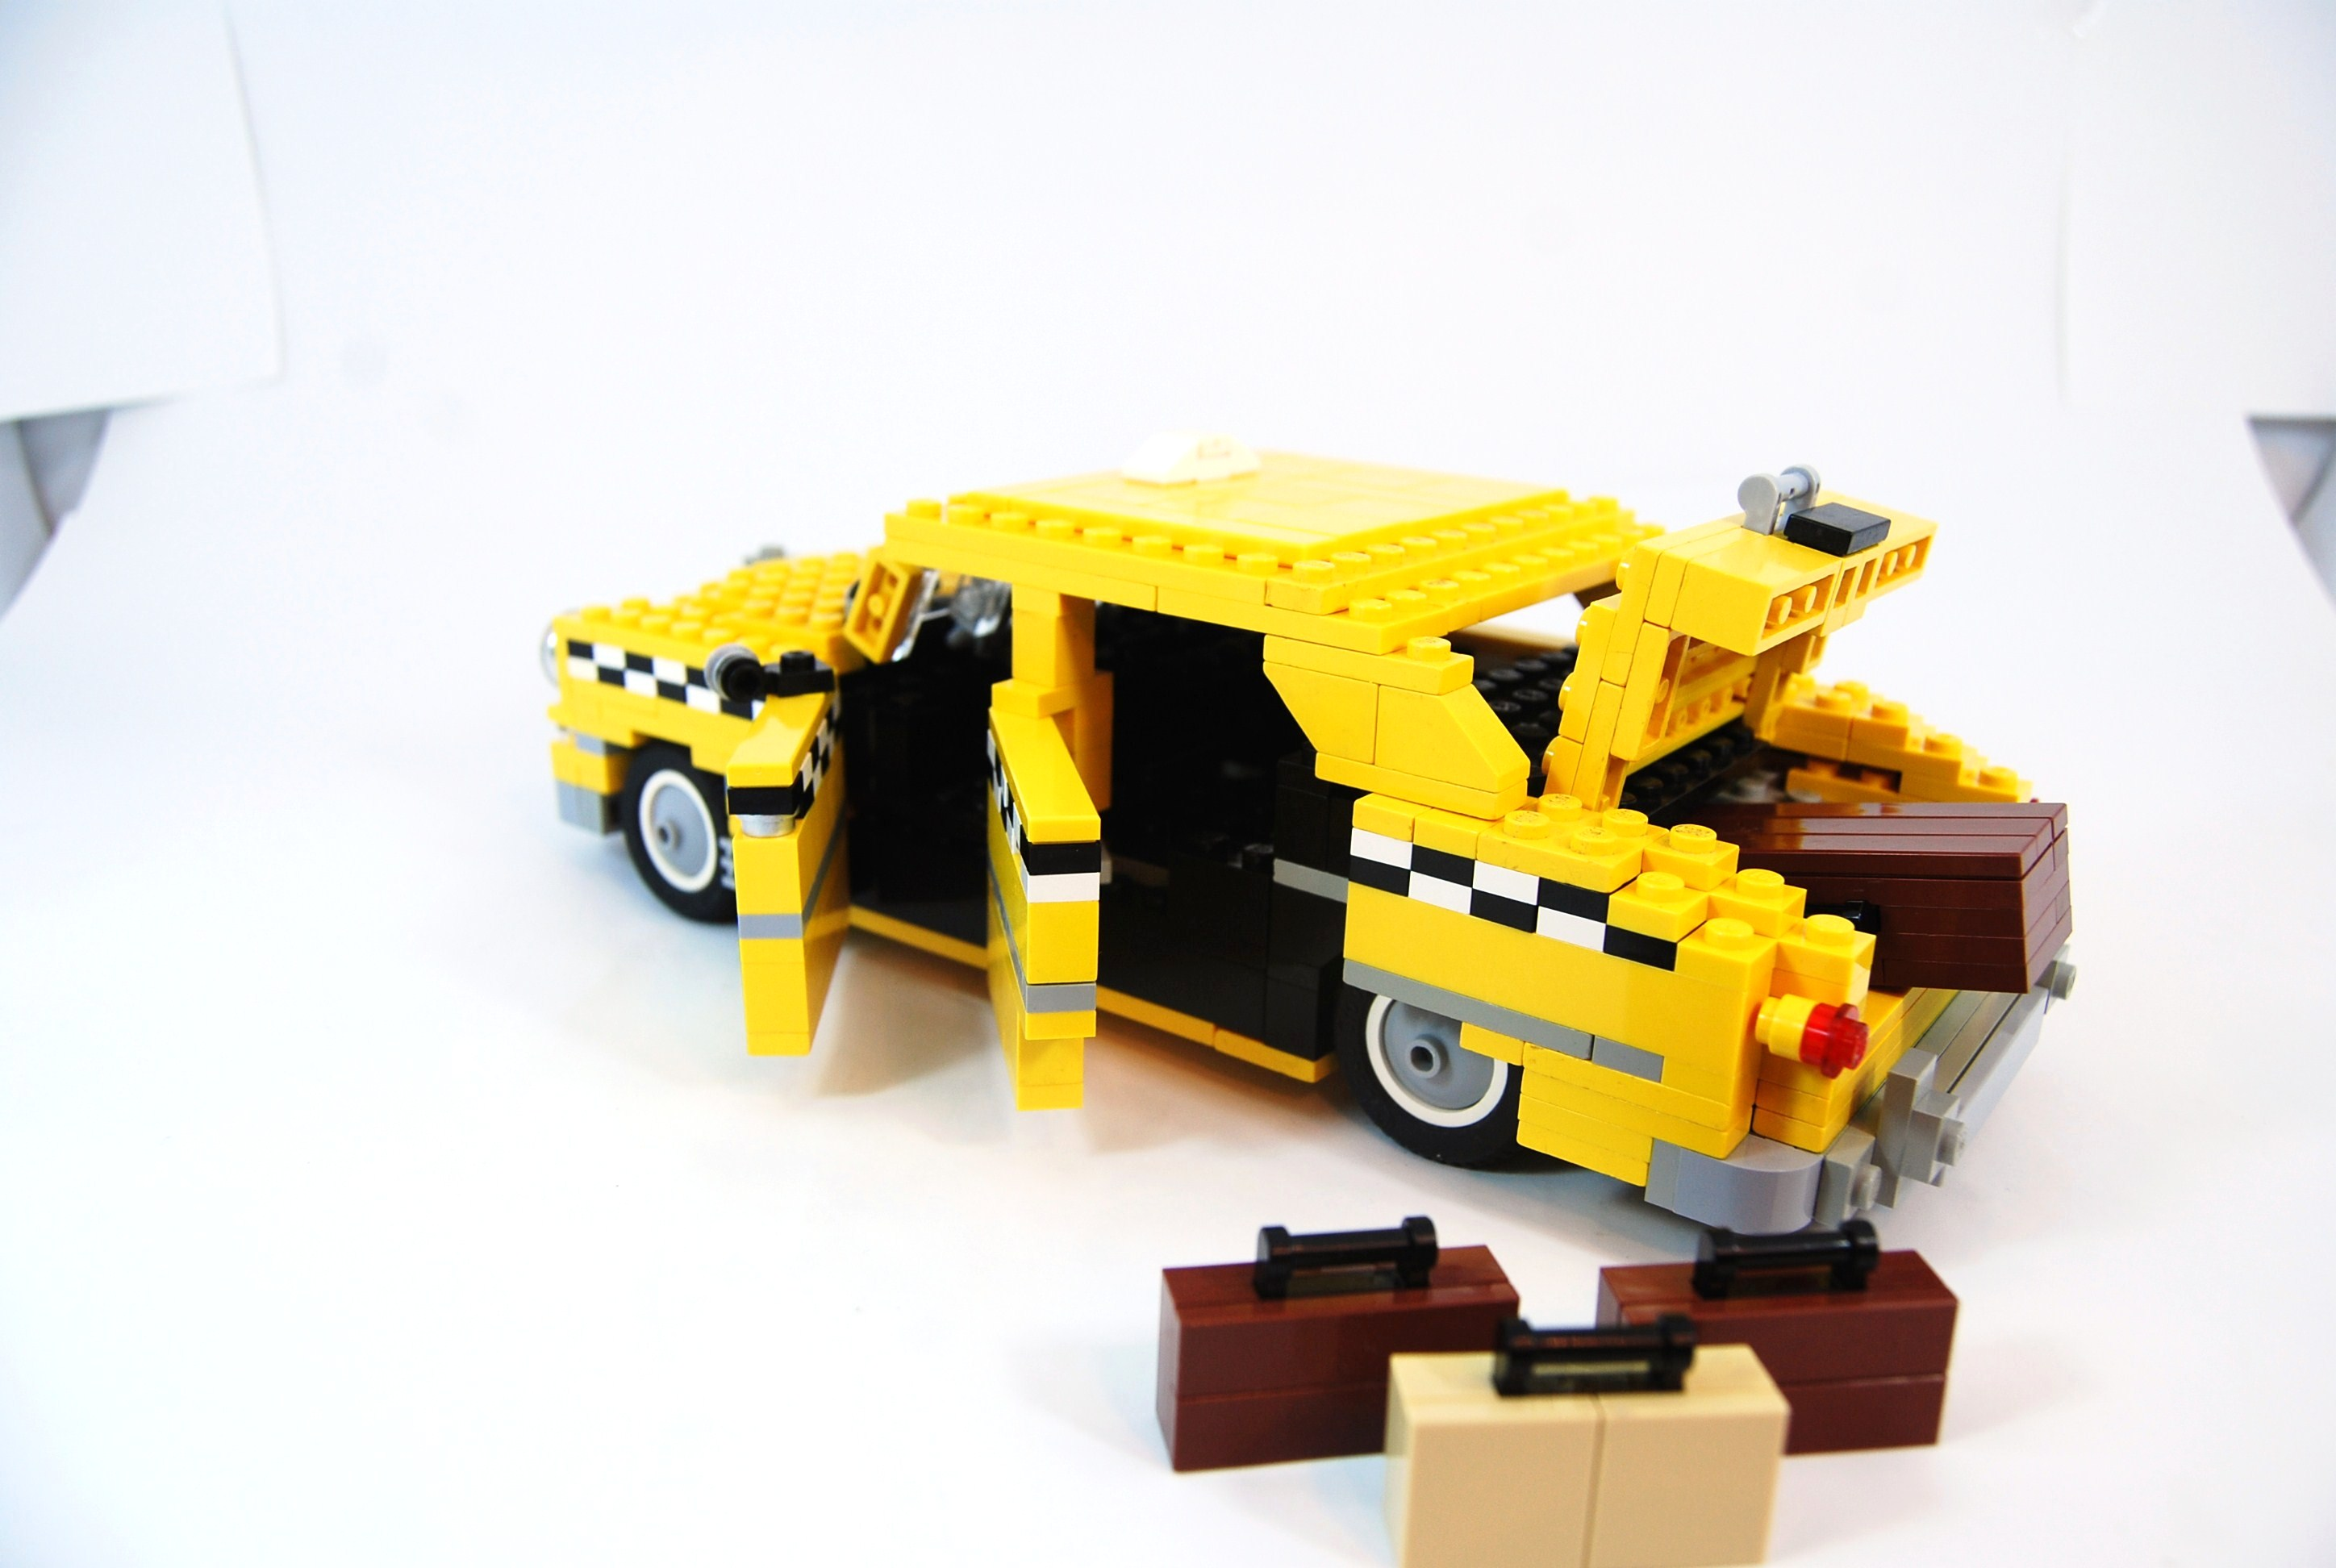 1949_ford_fordor_taxi_with_luggage_06.jpg